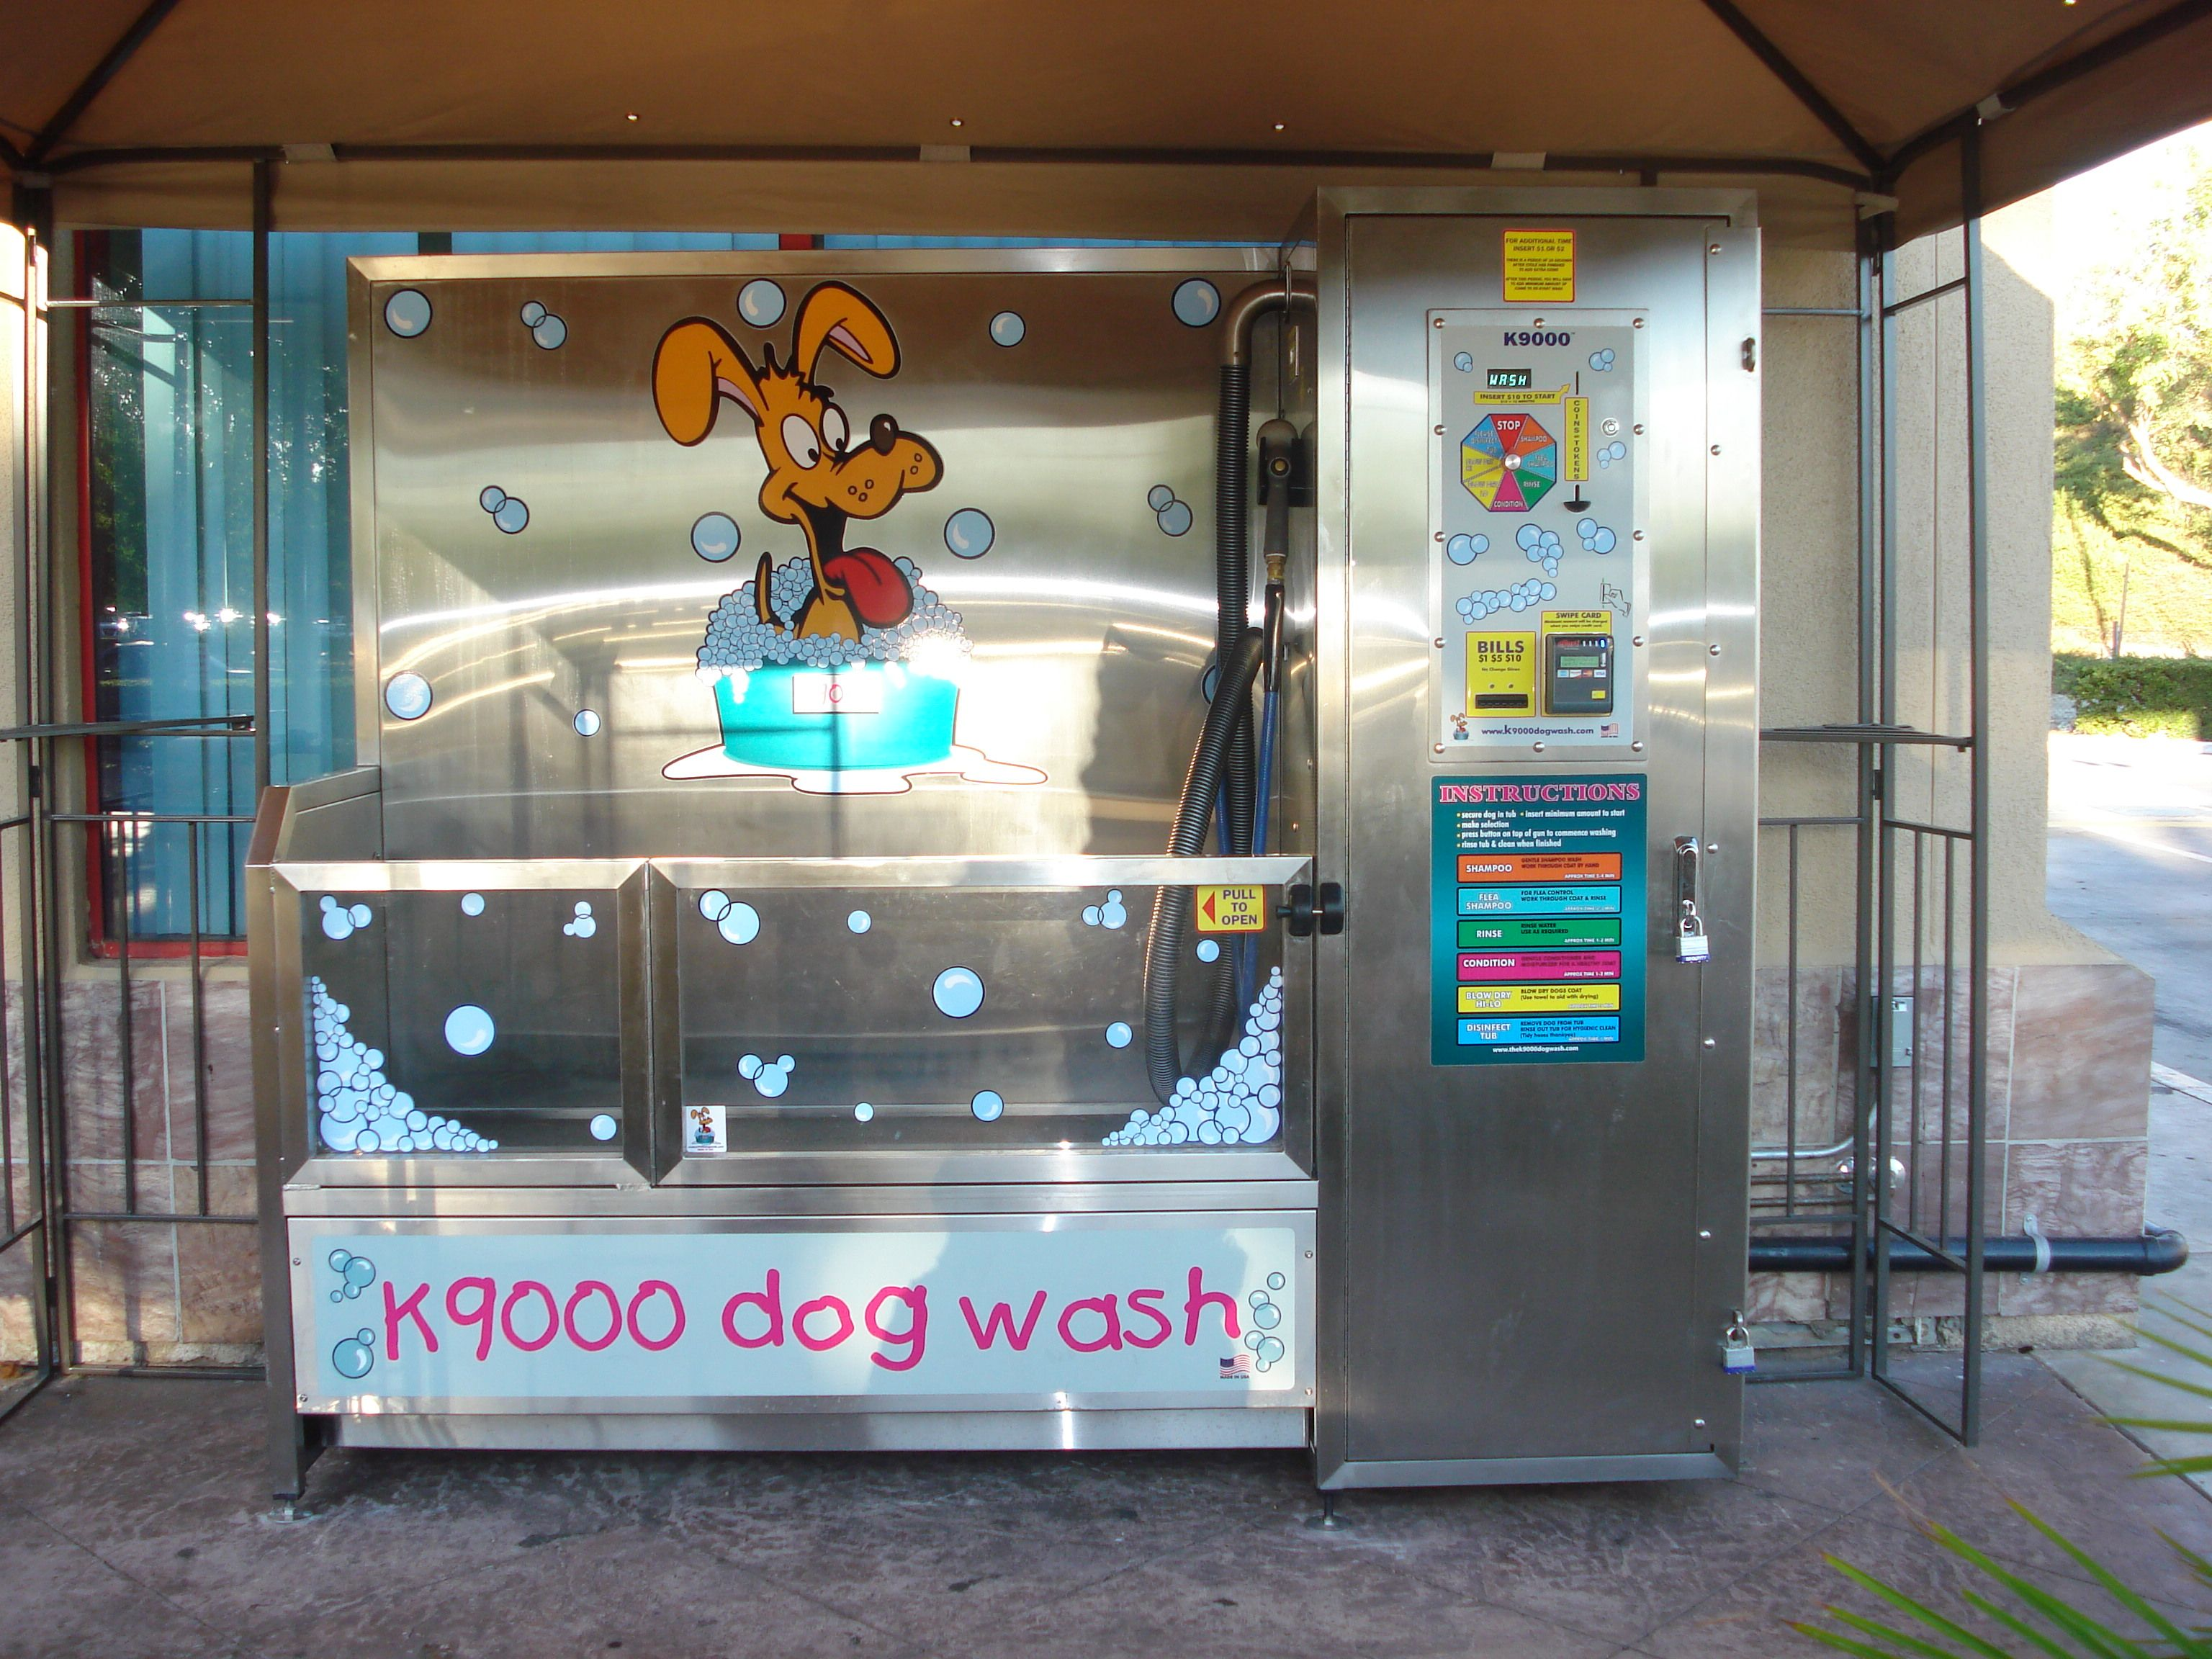 New State Of The Art Dog Washing Station Wash Your Dog Here At Crossroads Hand Car Wash Dog Washing Station Dog Wash Dog Heaven